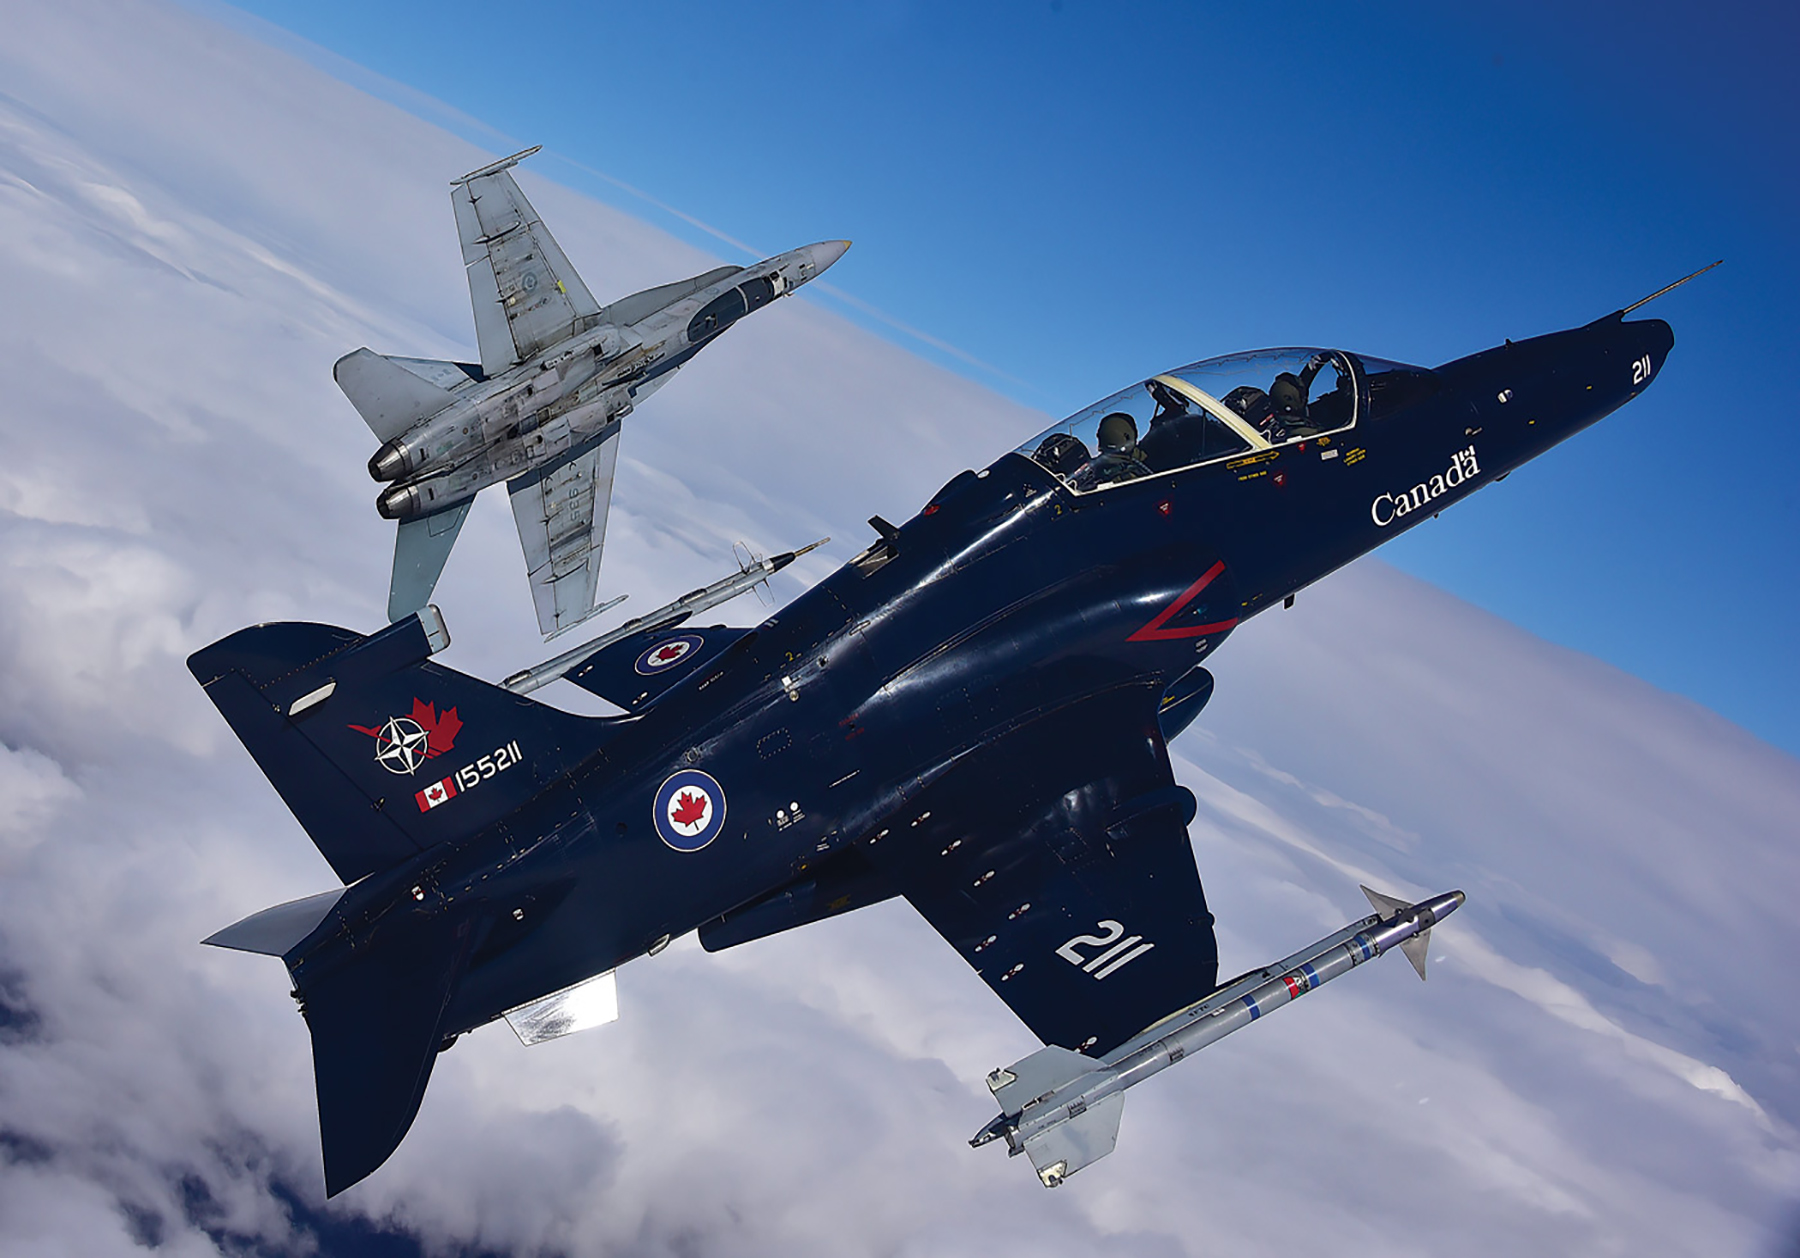 Stepping stone: The CT-155 Hawk provides students a solid base from which to transition to 410 Tactical Fighter (Operational Training) Squadron, where they will learn to fly the CF-188 Hornet (top). PHOTO: Mike Reyno, Skies magazine